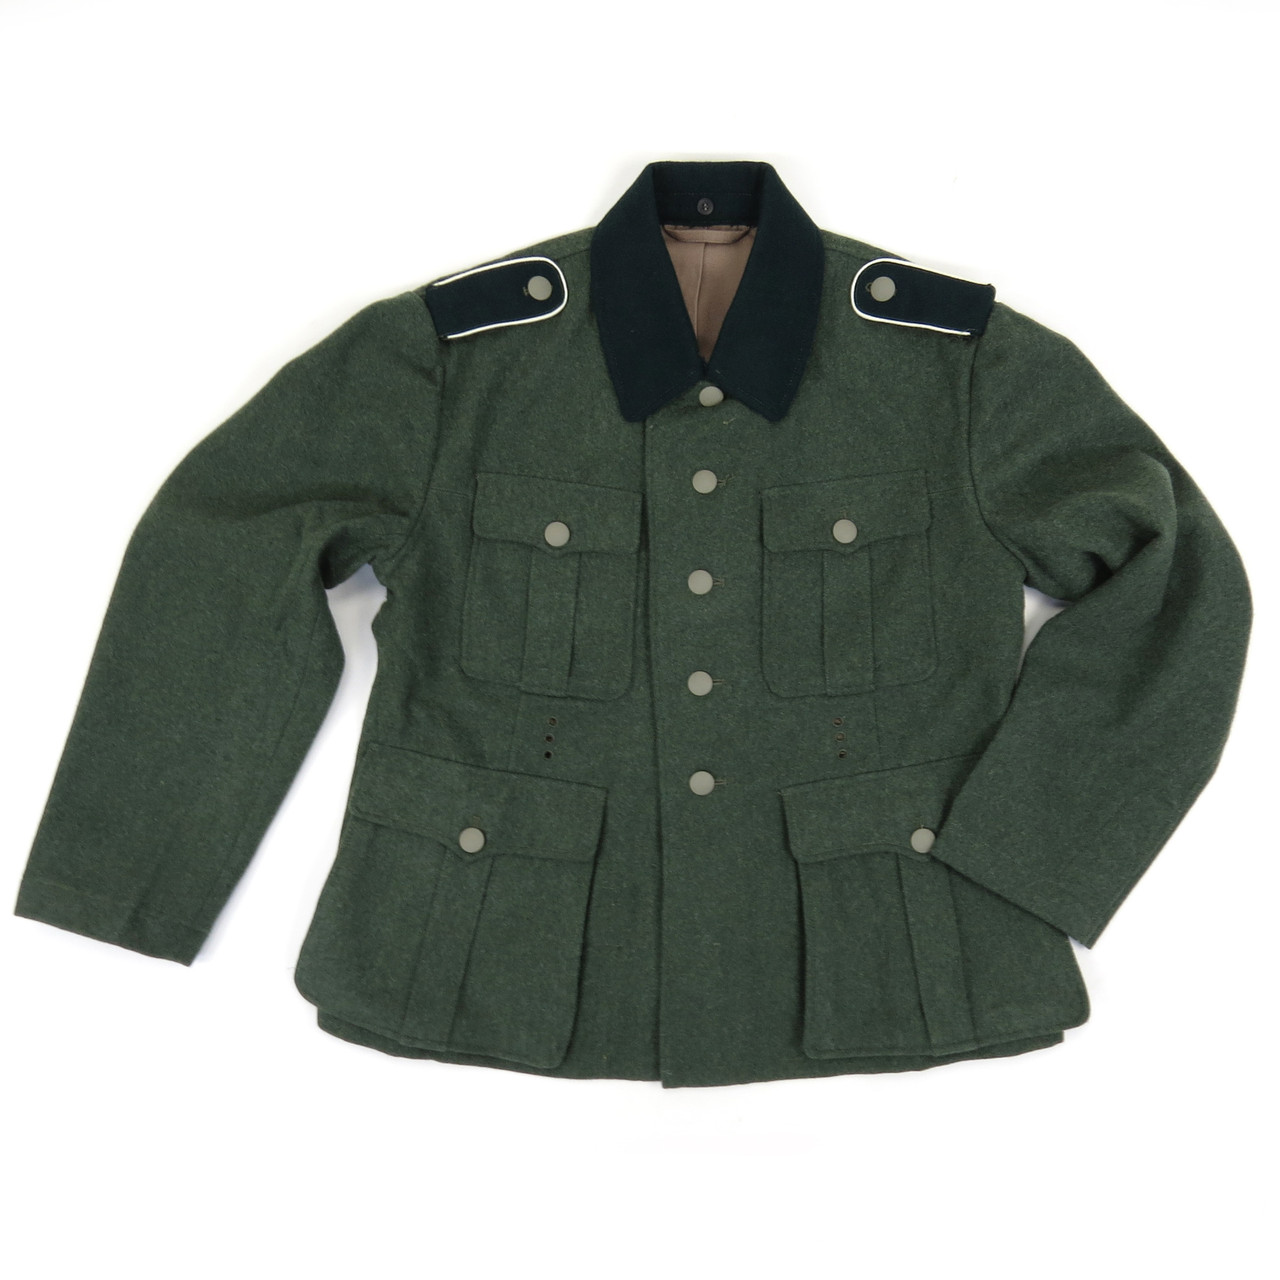 Reproduction M36 German Tunic from Hessen Antique